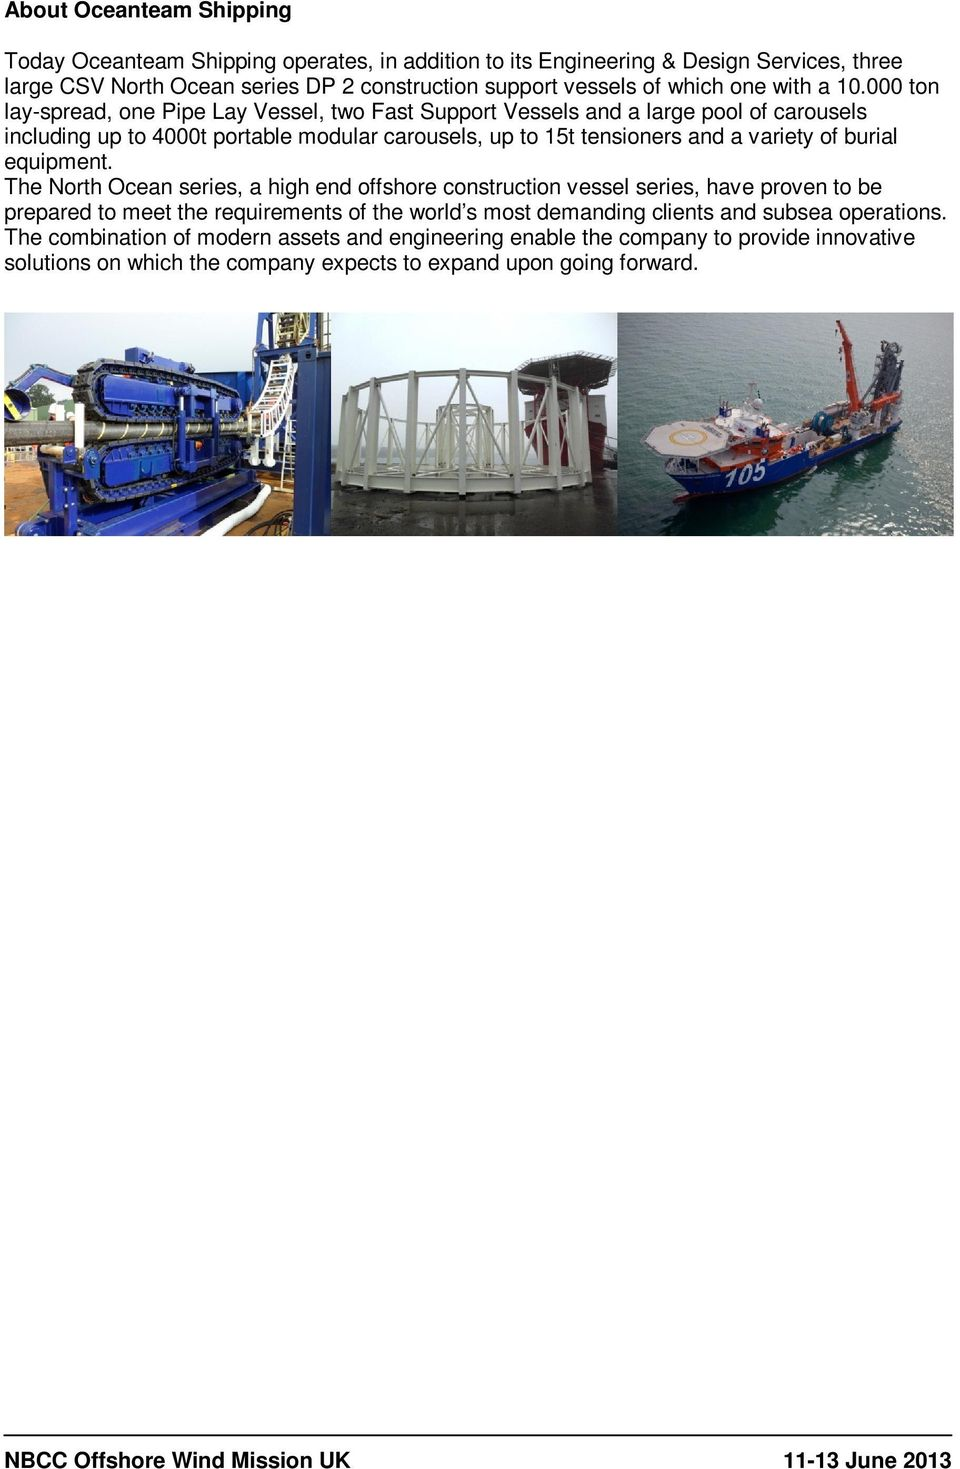 000 ton lay-spread, one Pipe Lay Vessel, two Fast Support Vessels and a large pool of carousels including up to 4000t portable modular carousels, up to 15t tensioners and a variety of